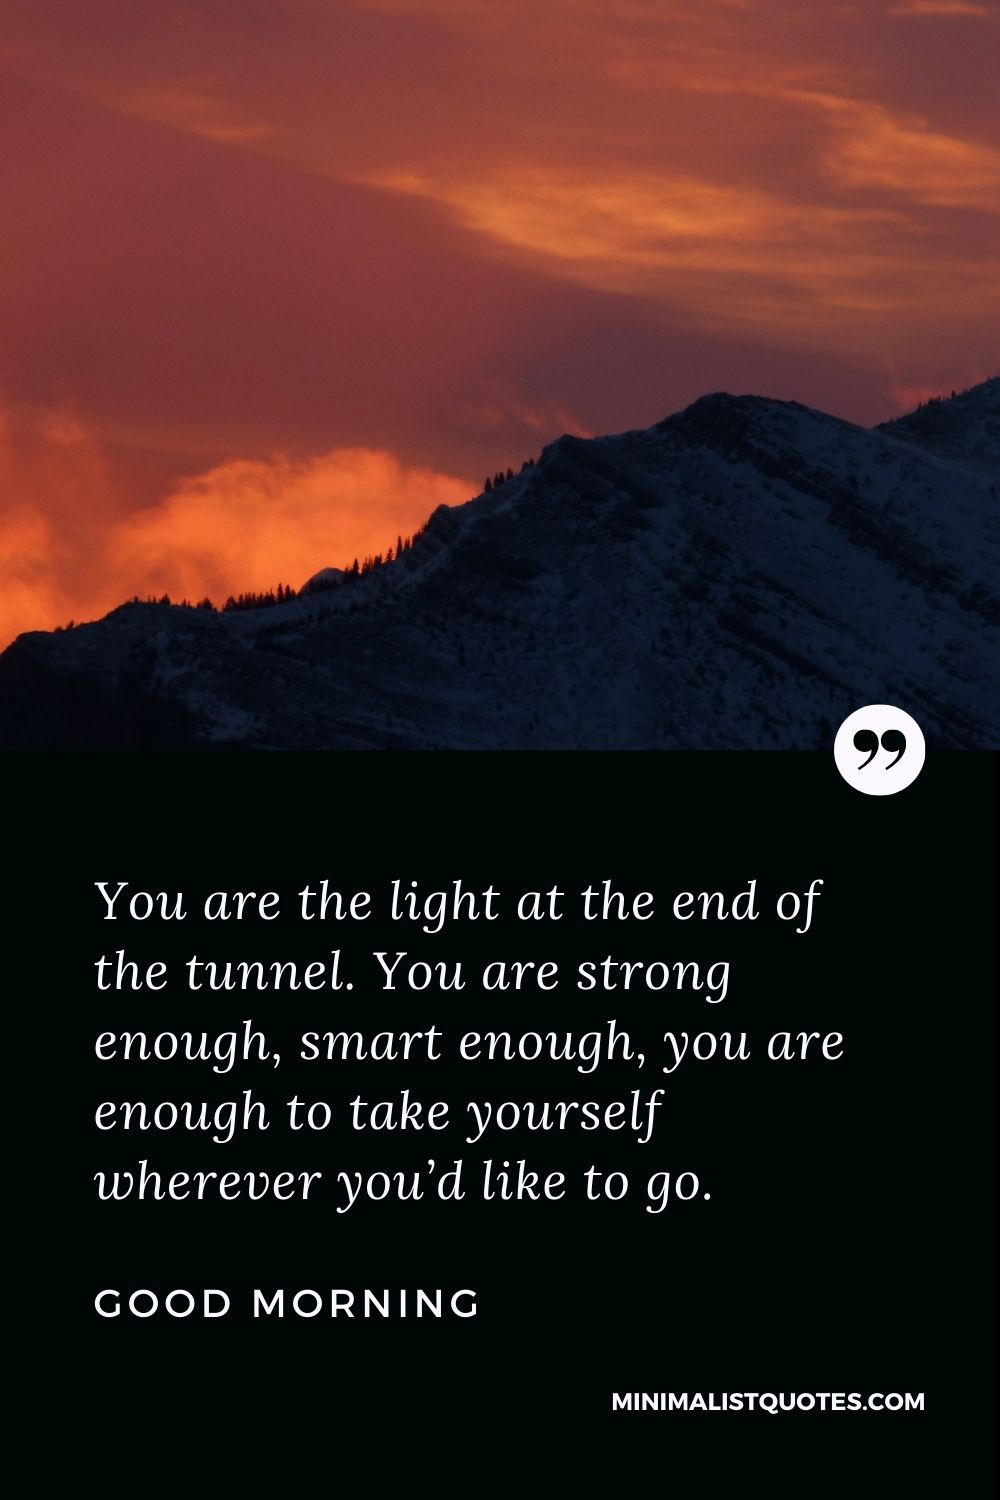 Good Morning Wish & Message With Image: You are the light at the end of the tunnel. You are strong enough, smart enough, you are enough to take yourself wherever you'd like to go.